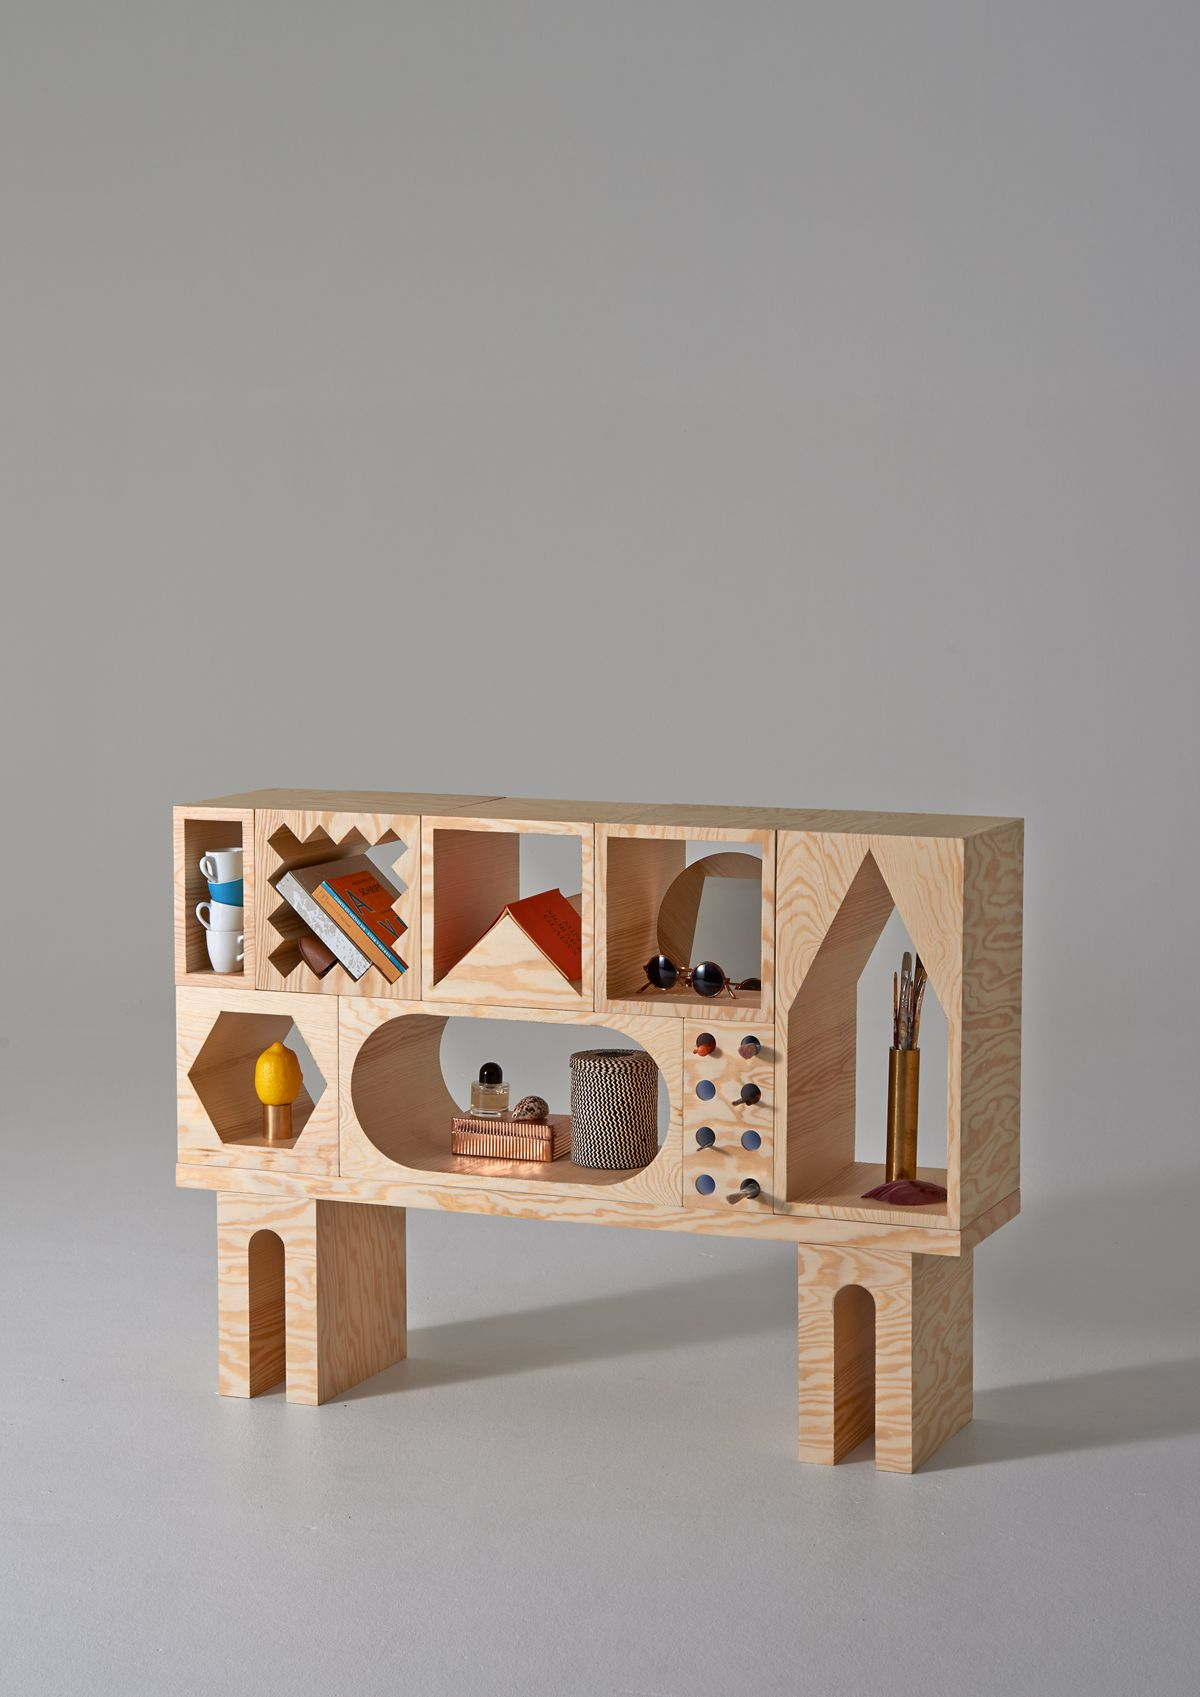 Playful furniture inviting you to fill in the voids room collection